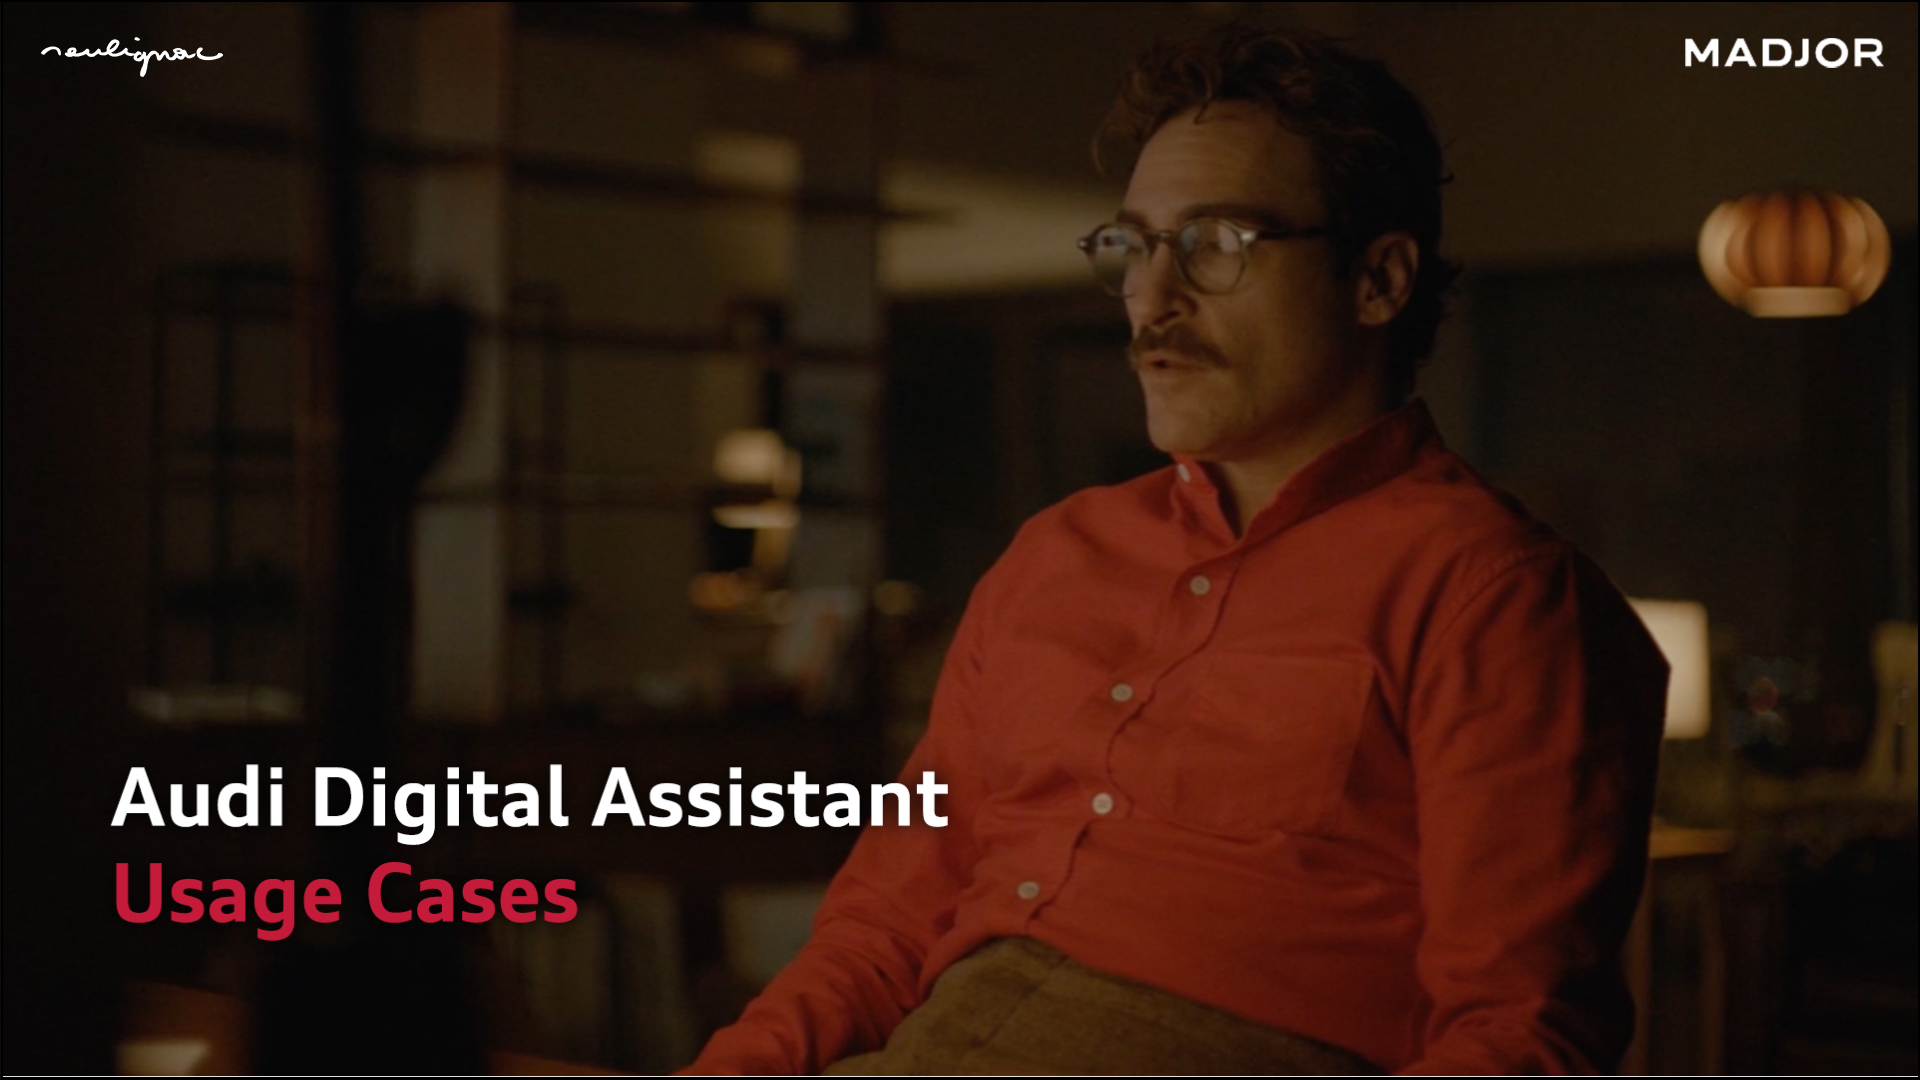 Audi China - Digital Assistant Researches - Art direction for video storyboard summarizing the researches - Francois Soulignac, MADJOR Labbrand Shanghai, China - PHOTO: Joaquin Phoenix in HER, directed by Spike Jonze